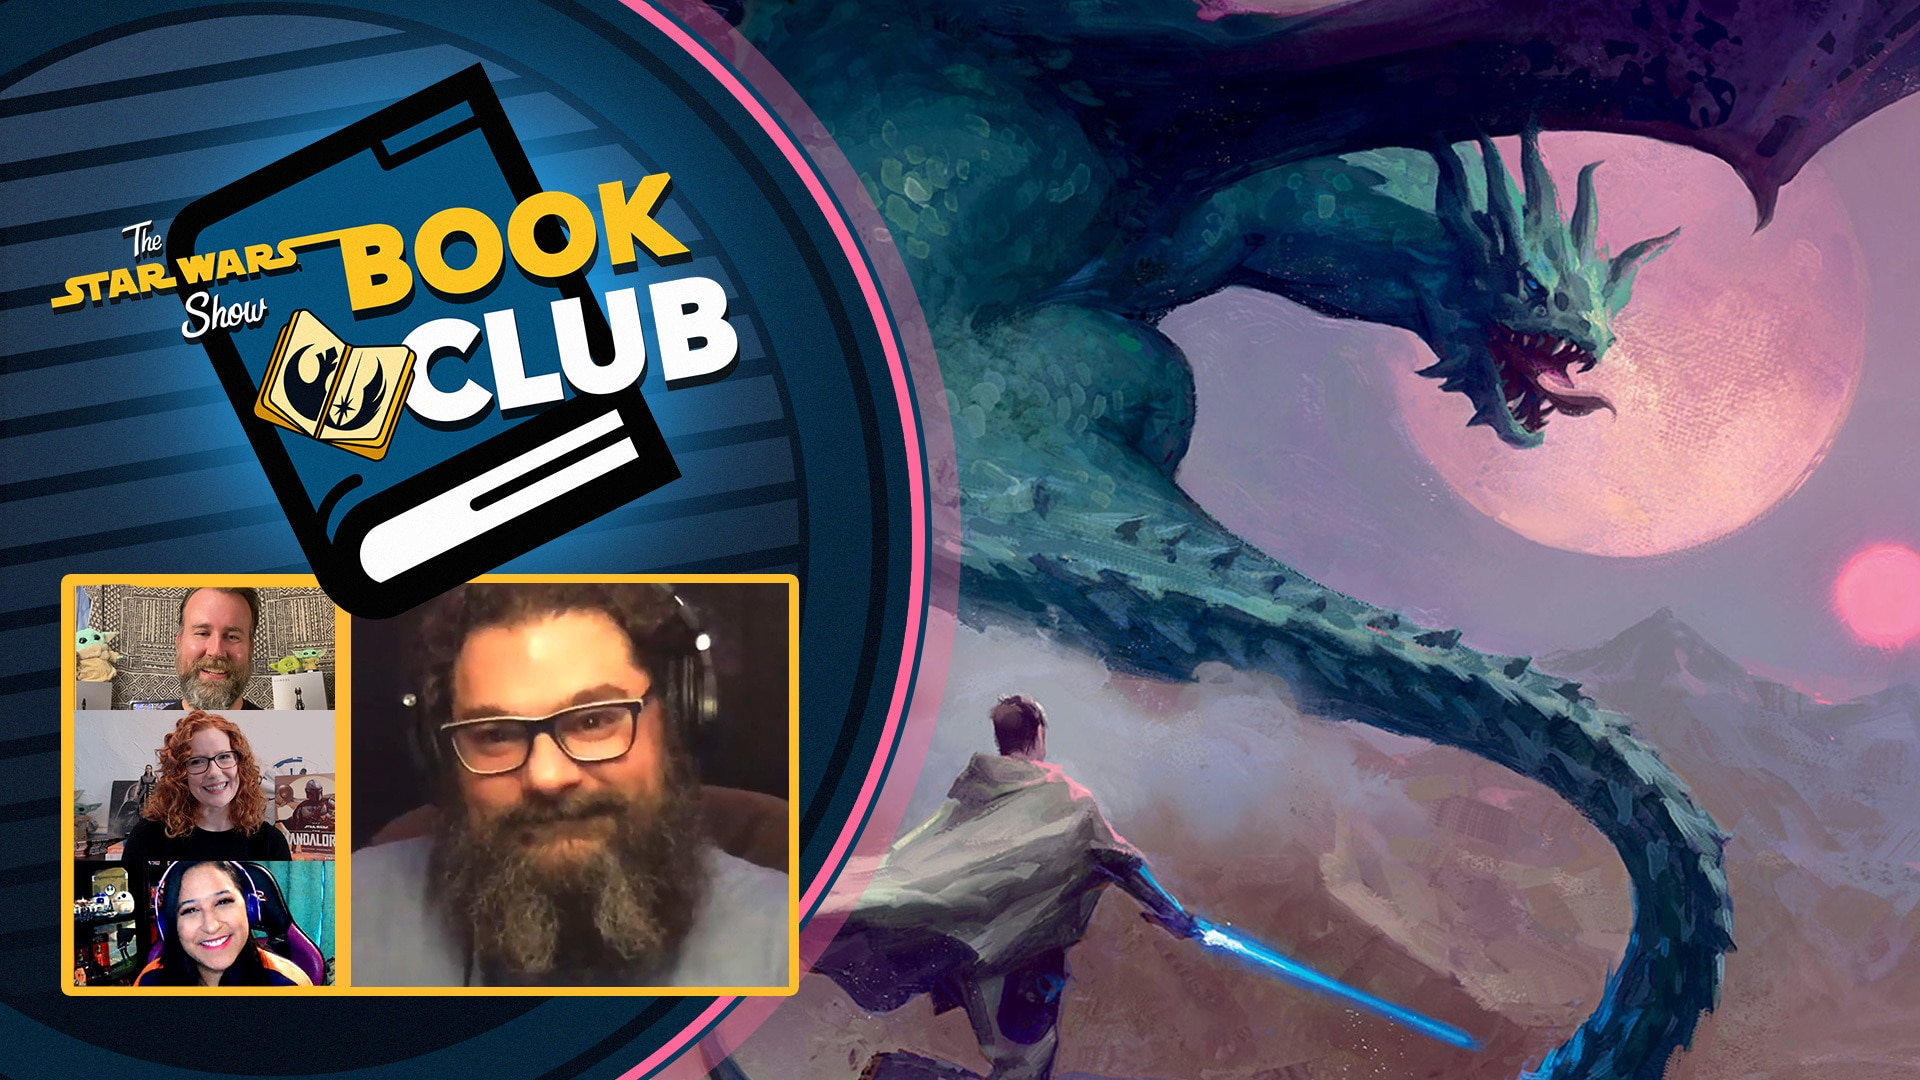 Star Wars: Myths and Fables   The Star Wars Show Book Club